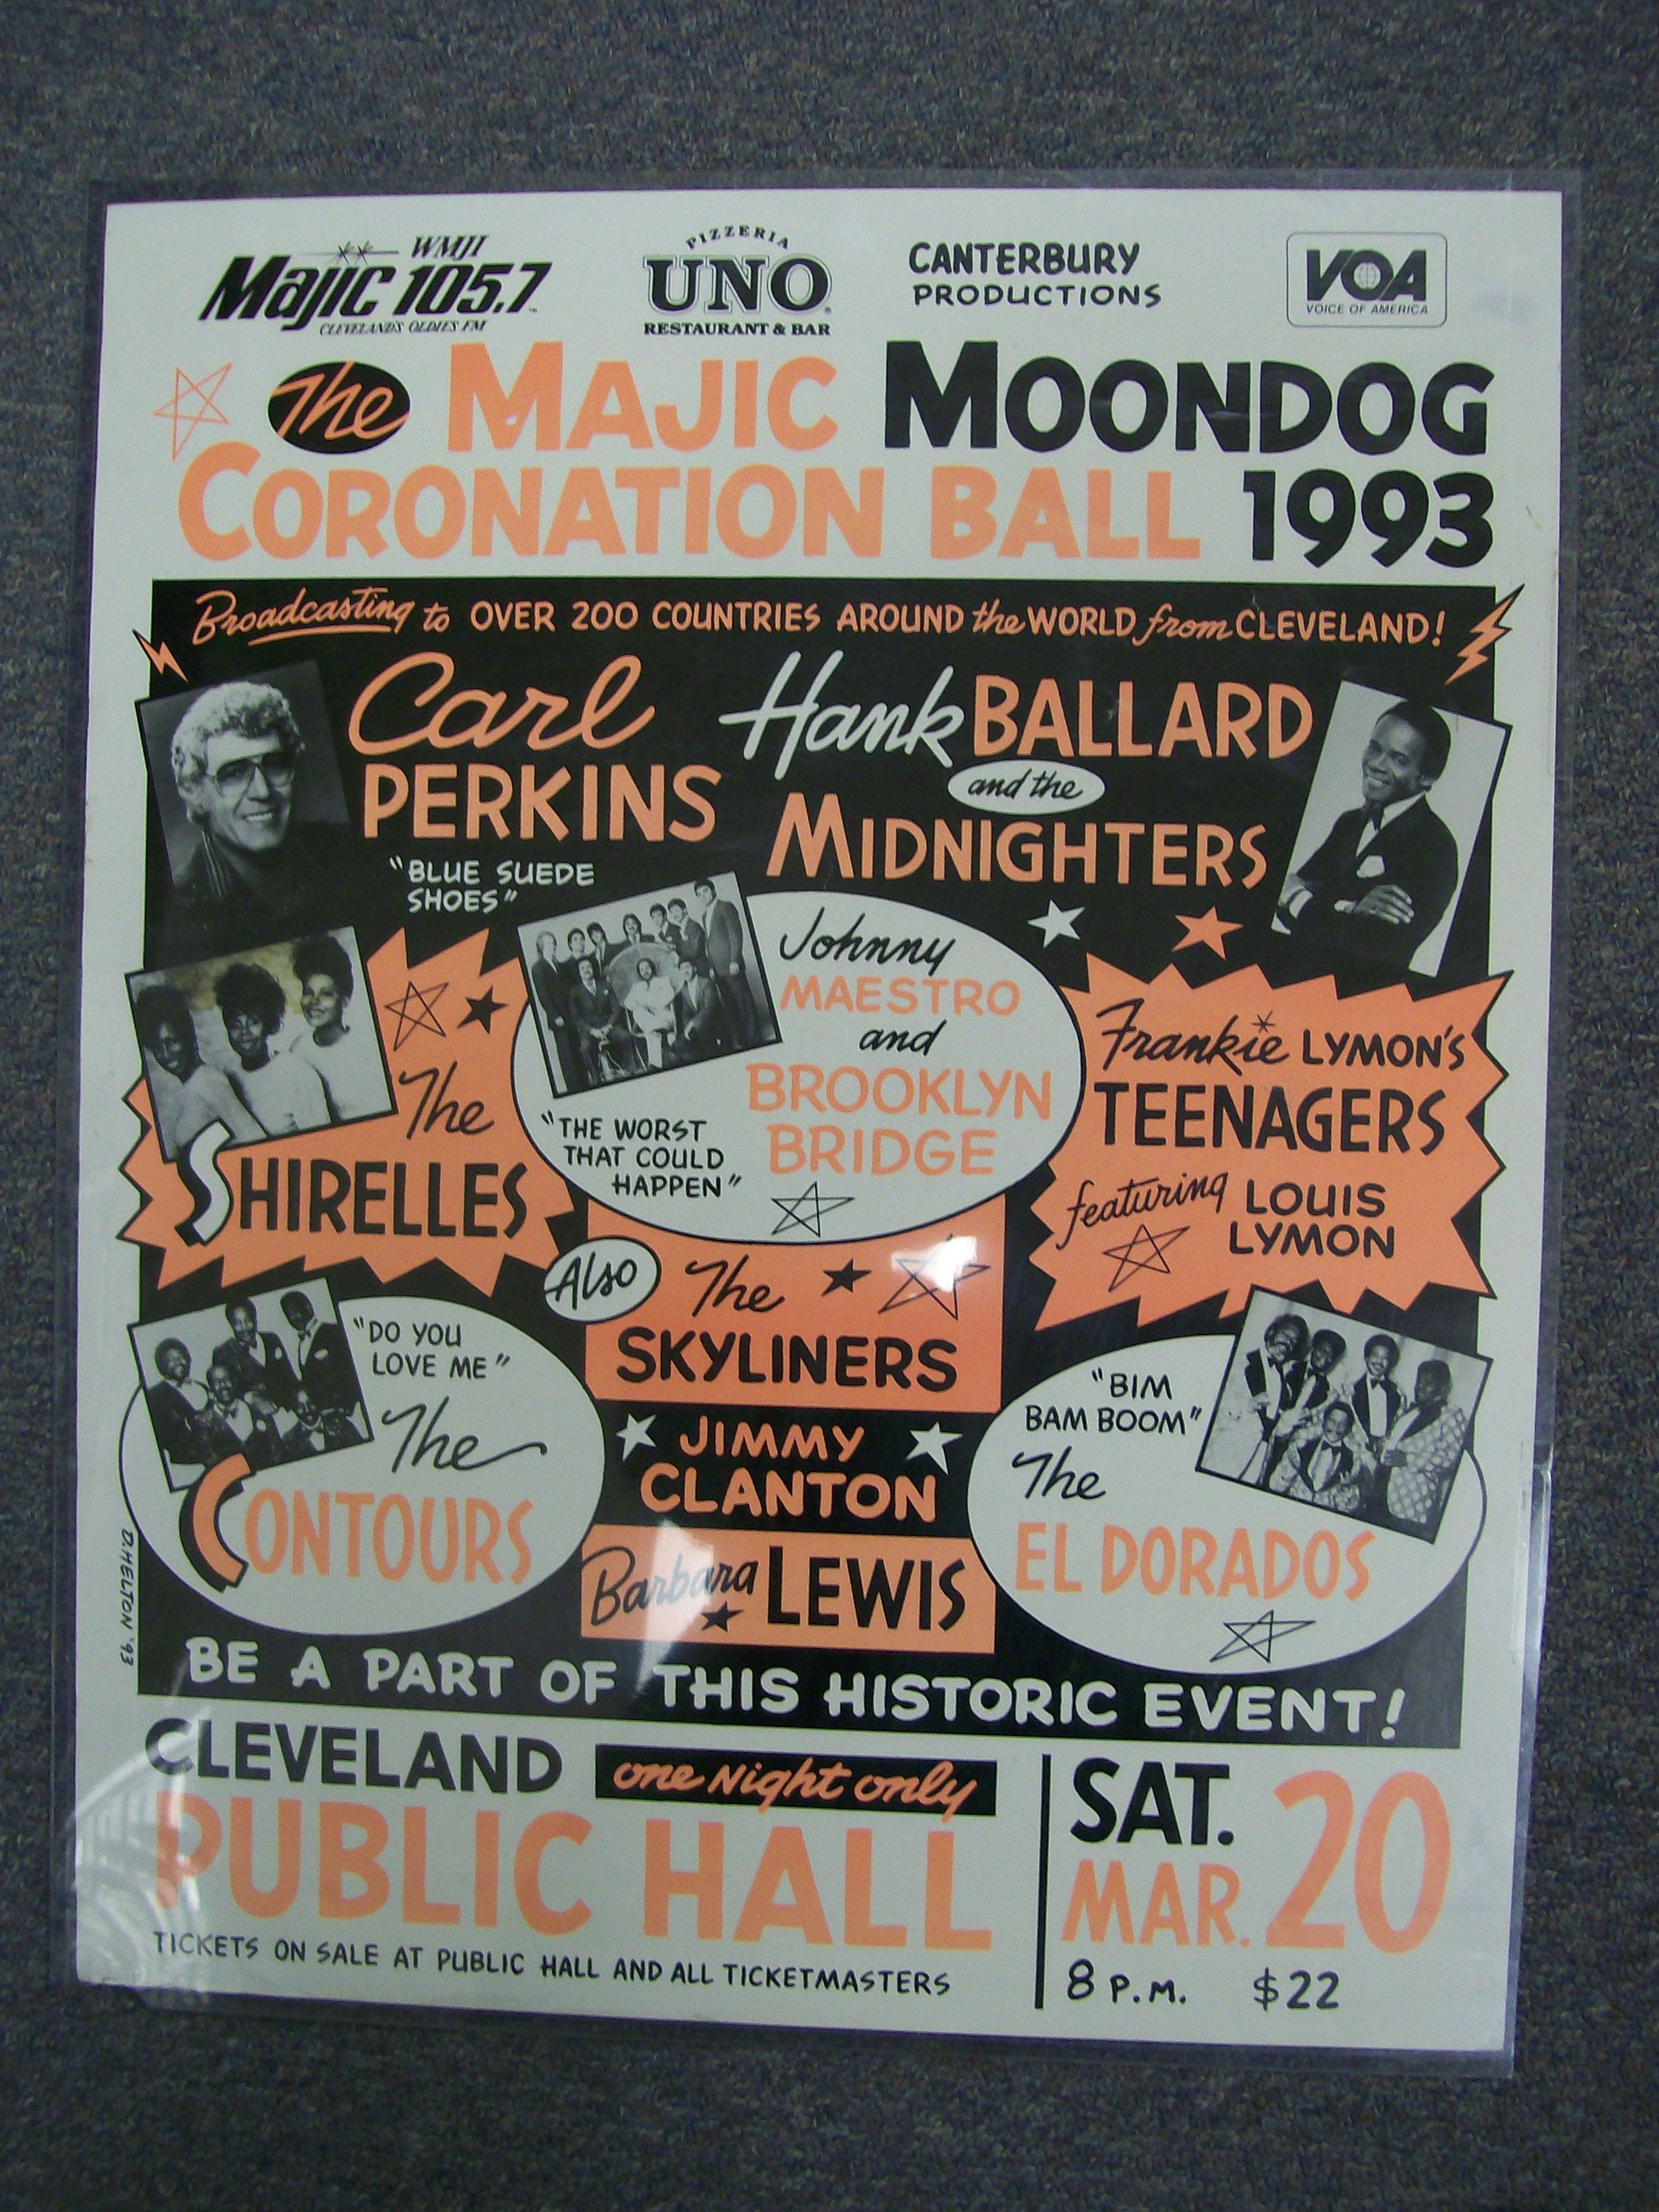 Majic Moondog Coronation Ball 1993 Cleveland Public Hall